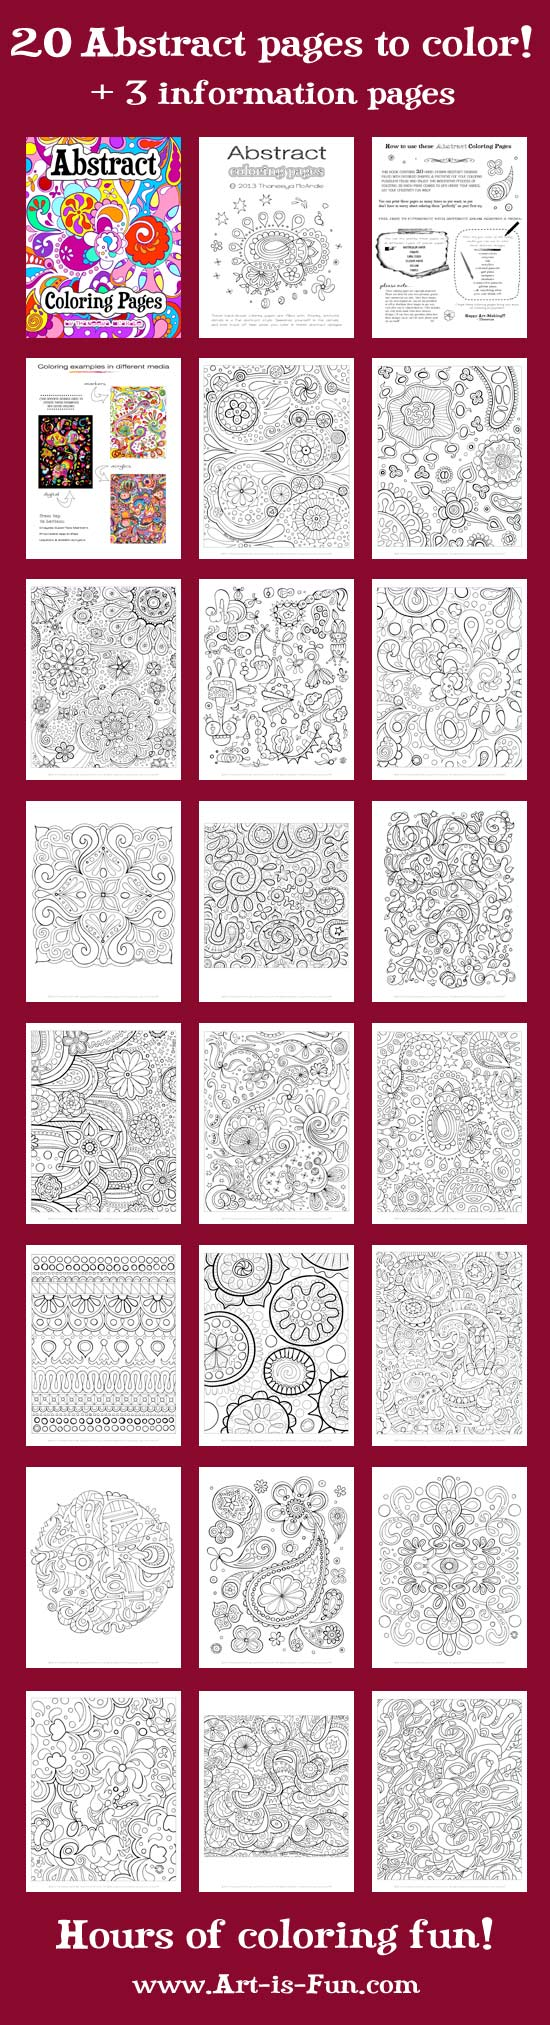 FREE-Printable-Abstract-Coloring-pages-wallpaper-wp4602944-2